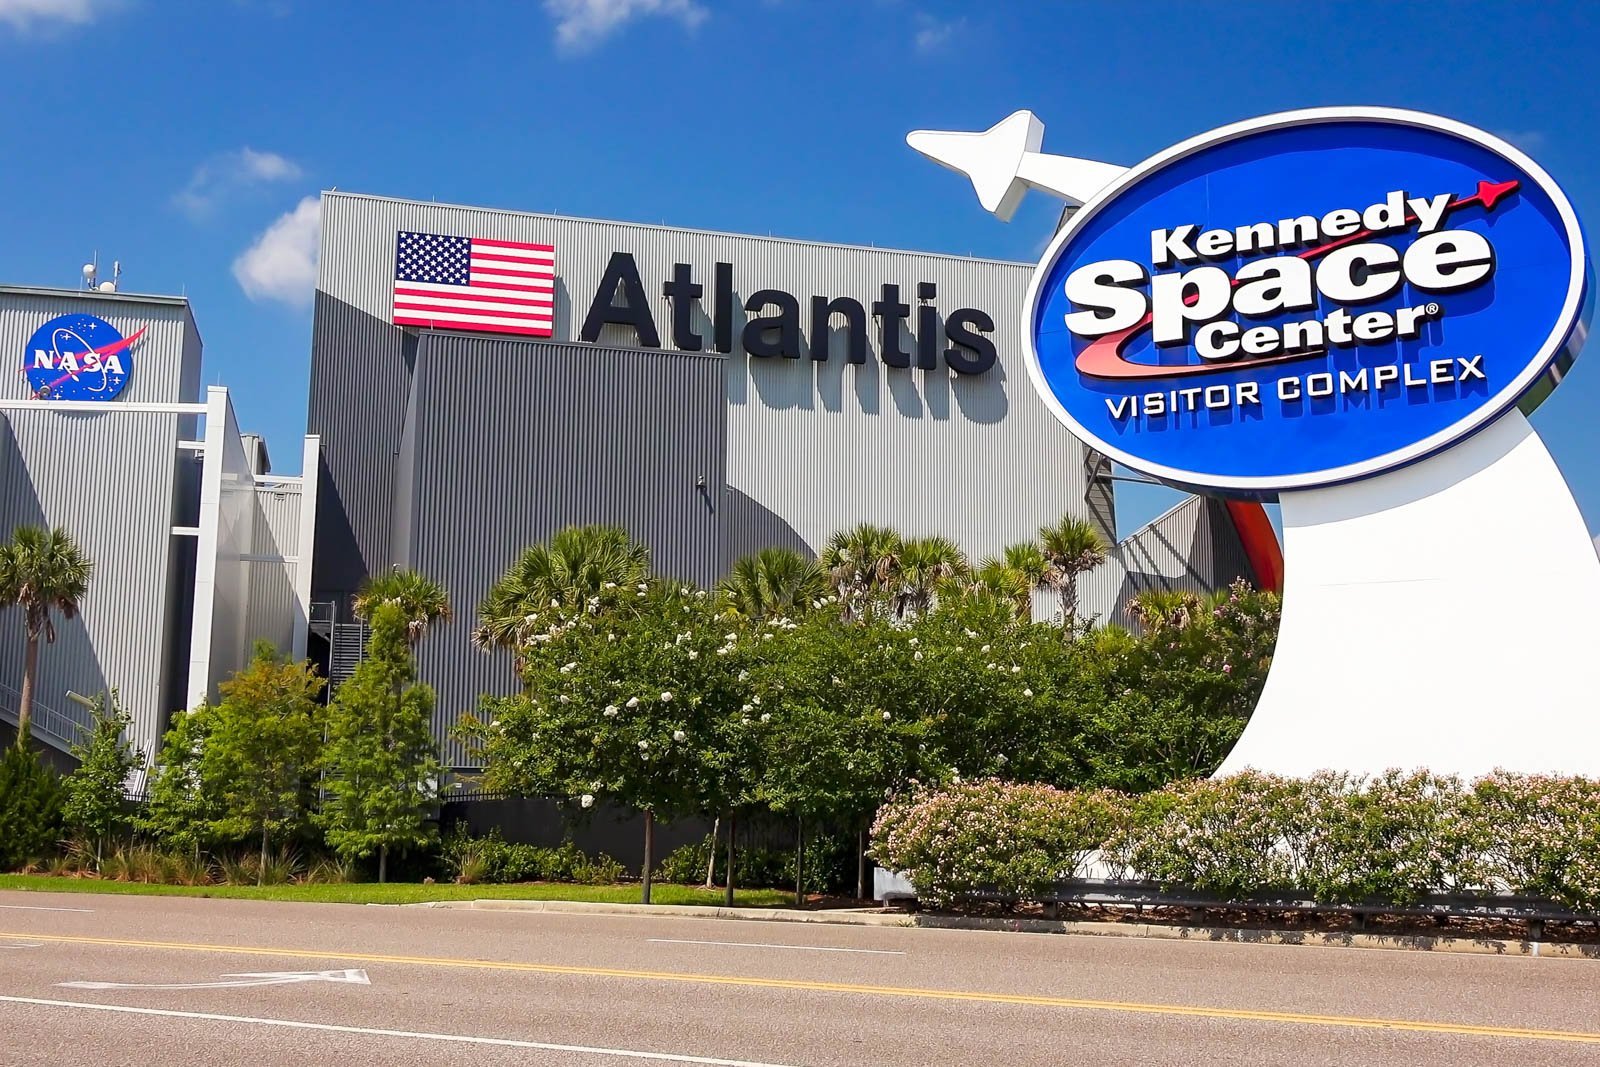 NASA Kennedy Space Center Visitor Complex at Cape Canaveral, Florida. Whether with family or friends, it is amonth the most educational and best places to go in Florida.